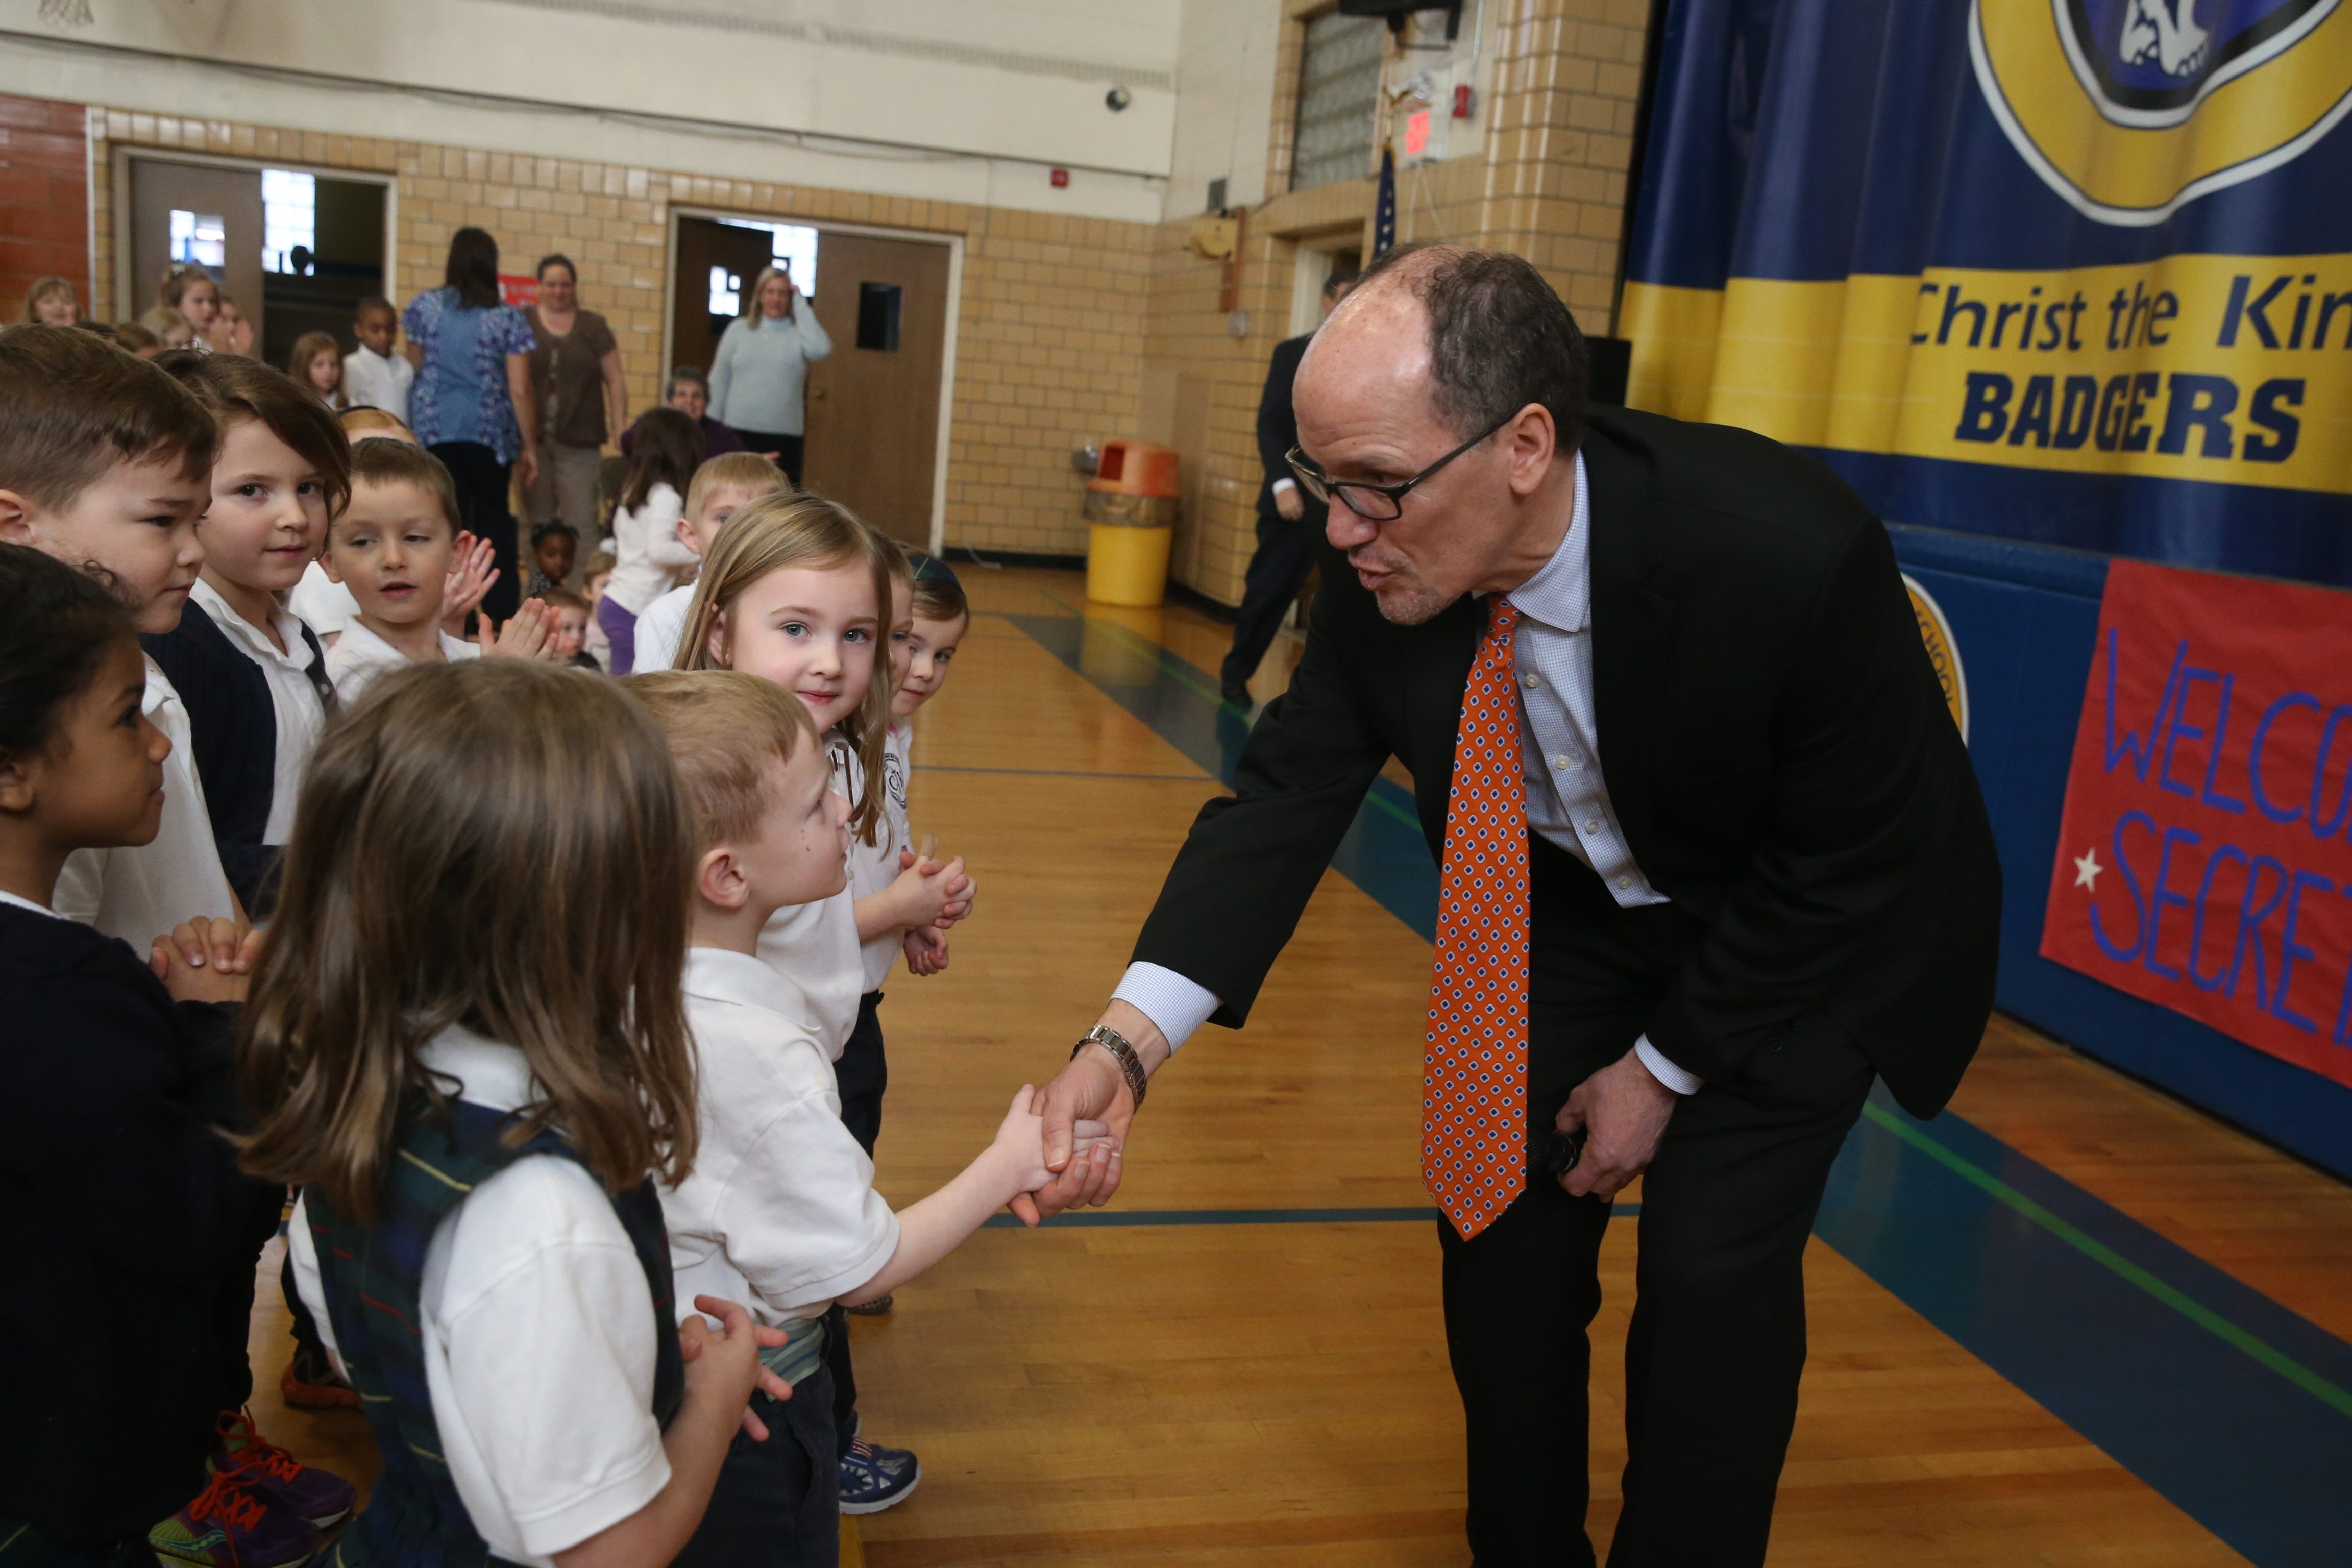 U.S. Labor Secretary Thomas E. Perez greets pupils Tuesday at Christ the King Elementary School in Snyder, which he attended four decades ago.